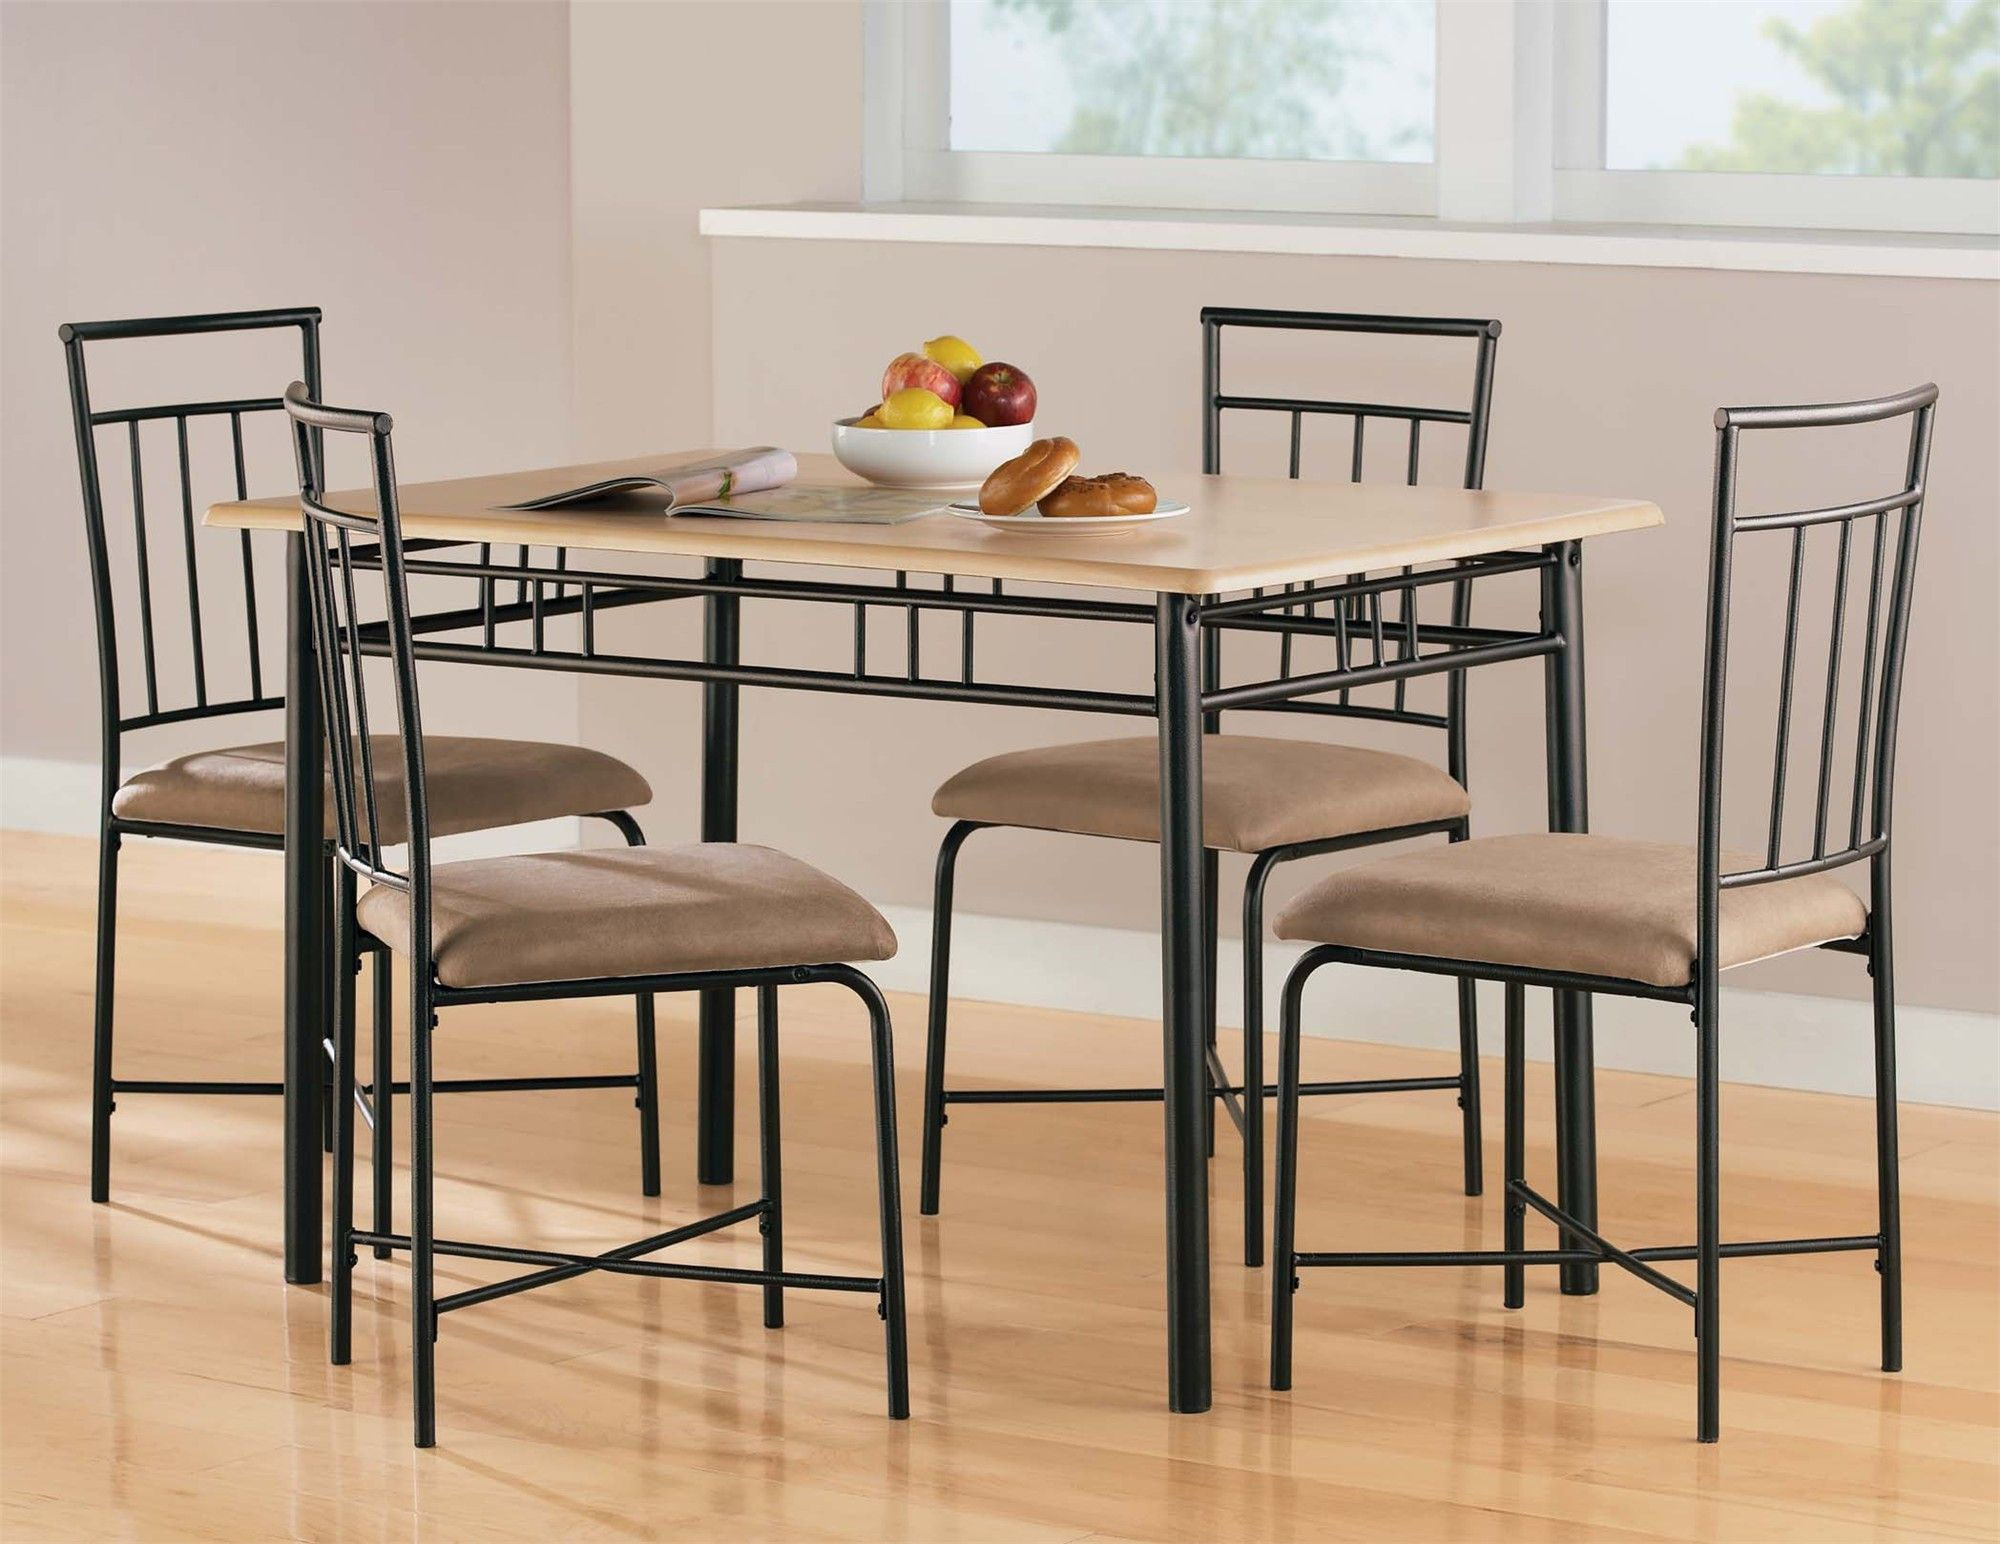 Dining Room Unique Dining Room Furniture Sets With Black Steel Best Laminate Dining Room Tables Inspiration